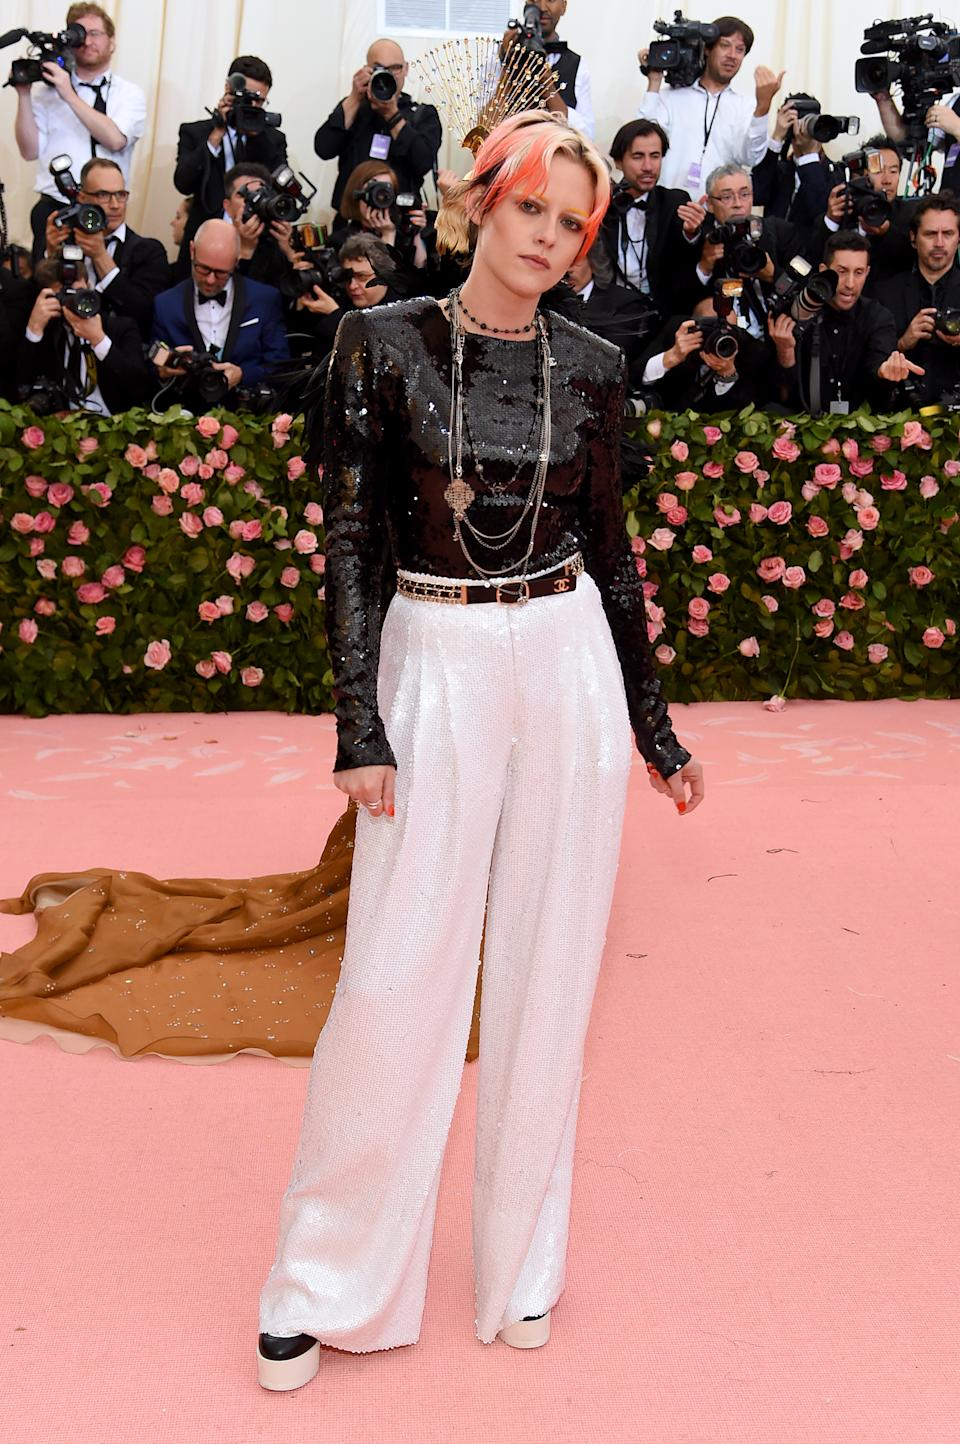 'Twilight' star Kristen Stewart stepped out in a two-piece, sequinned outfit which she matched with a cropped pink hairstyle. Photo: Getty Images